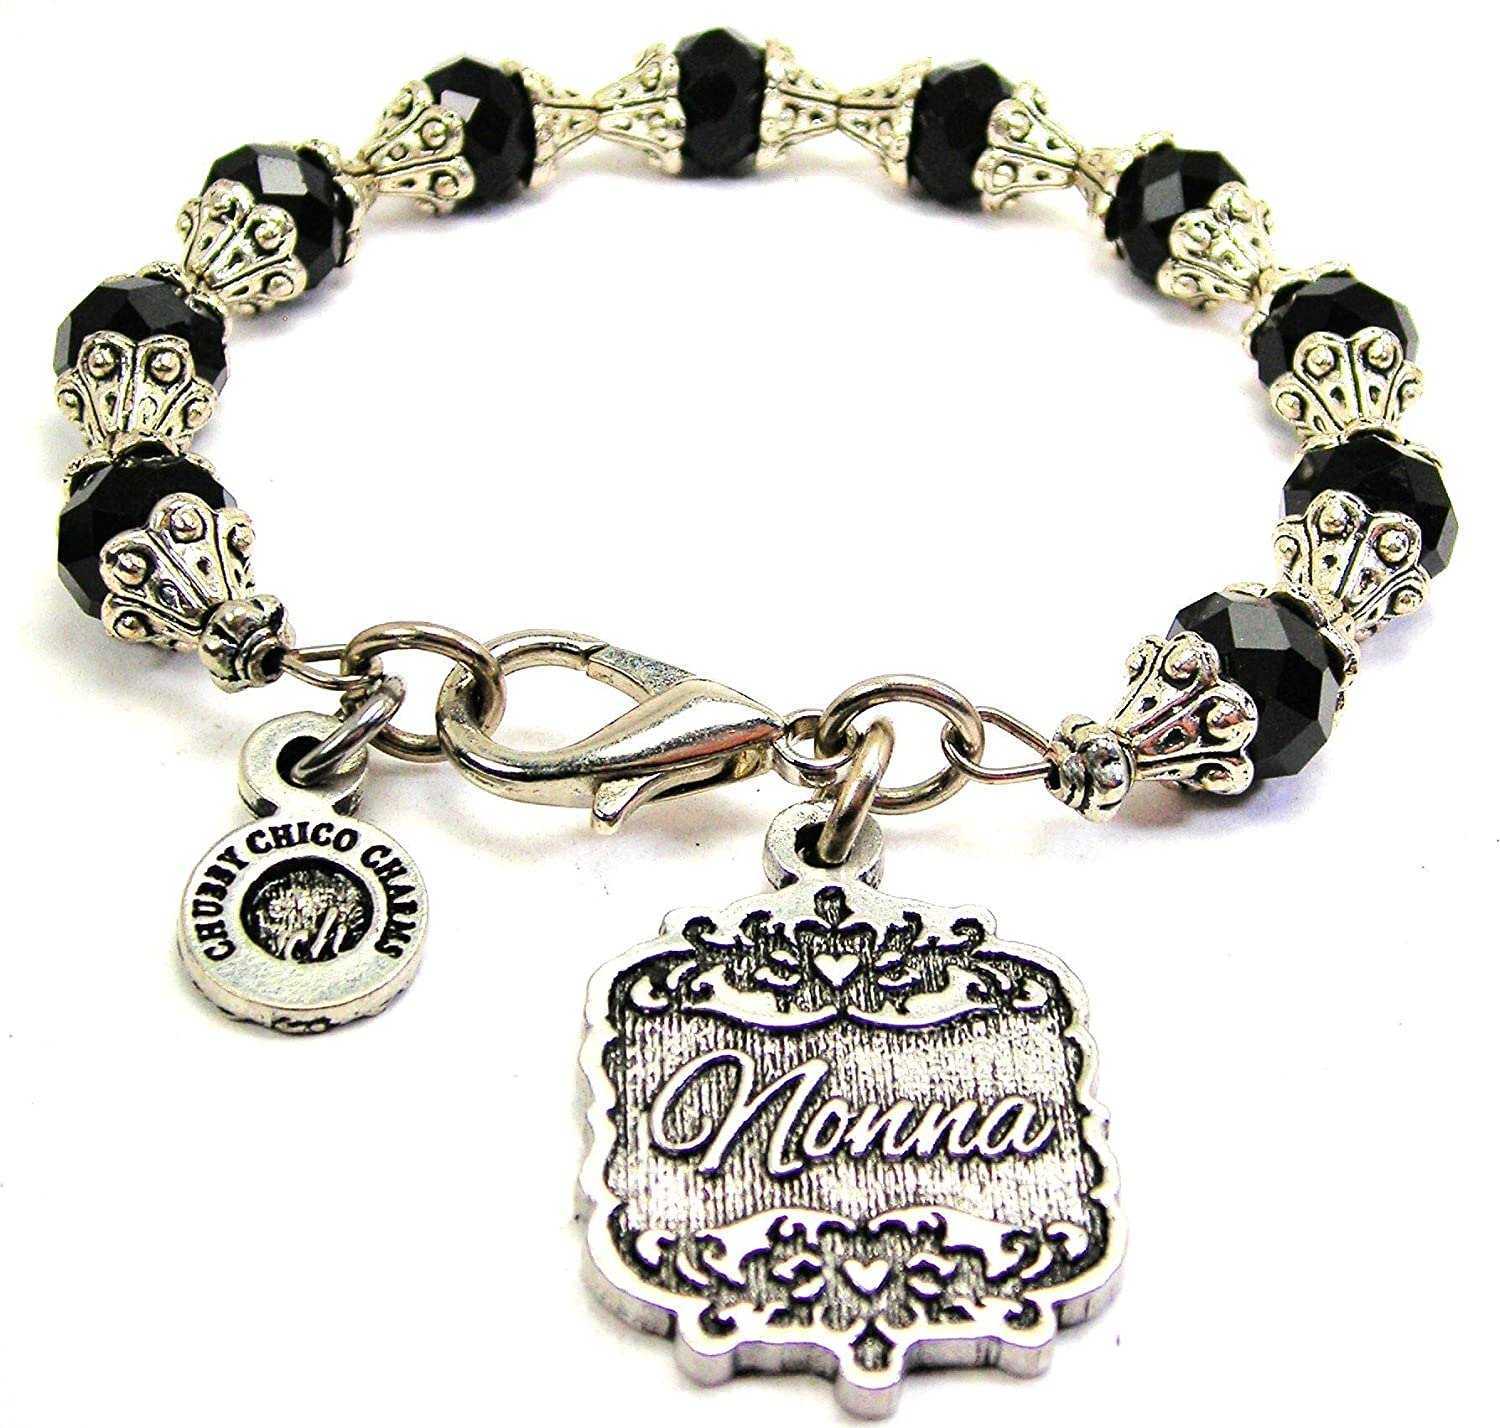 Chubby Chico Charms Nonna Victorian Scroll Capped Crystal Bracelet in Black